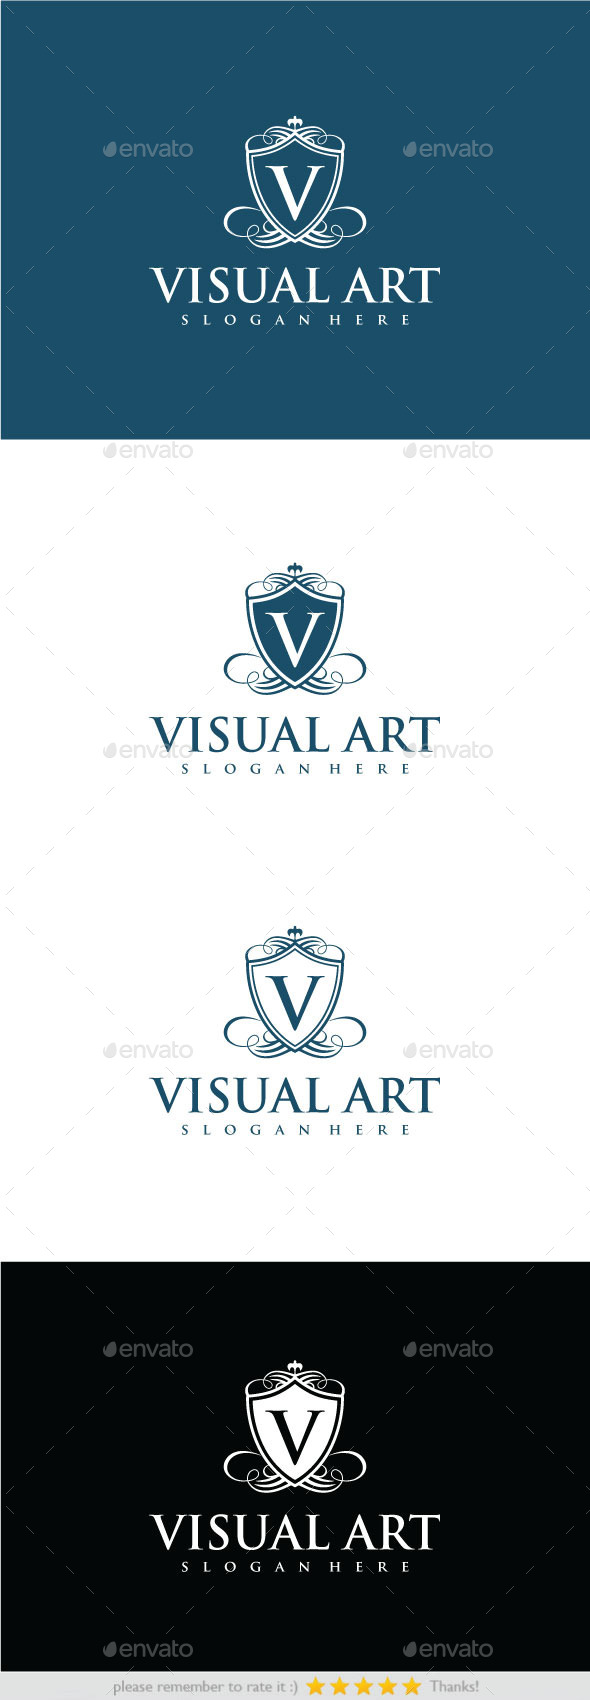 GraphicRiver Visual Art 10050440